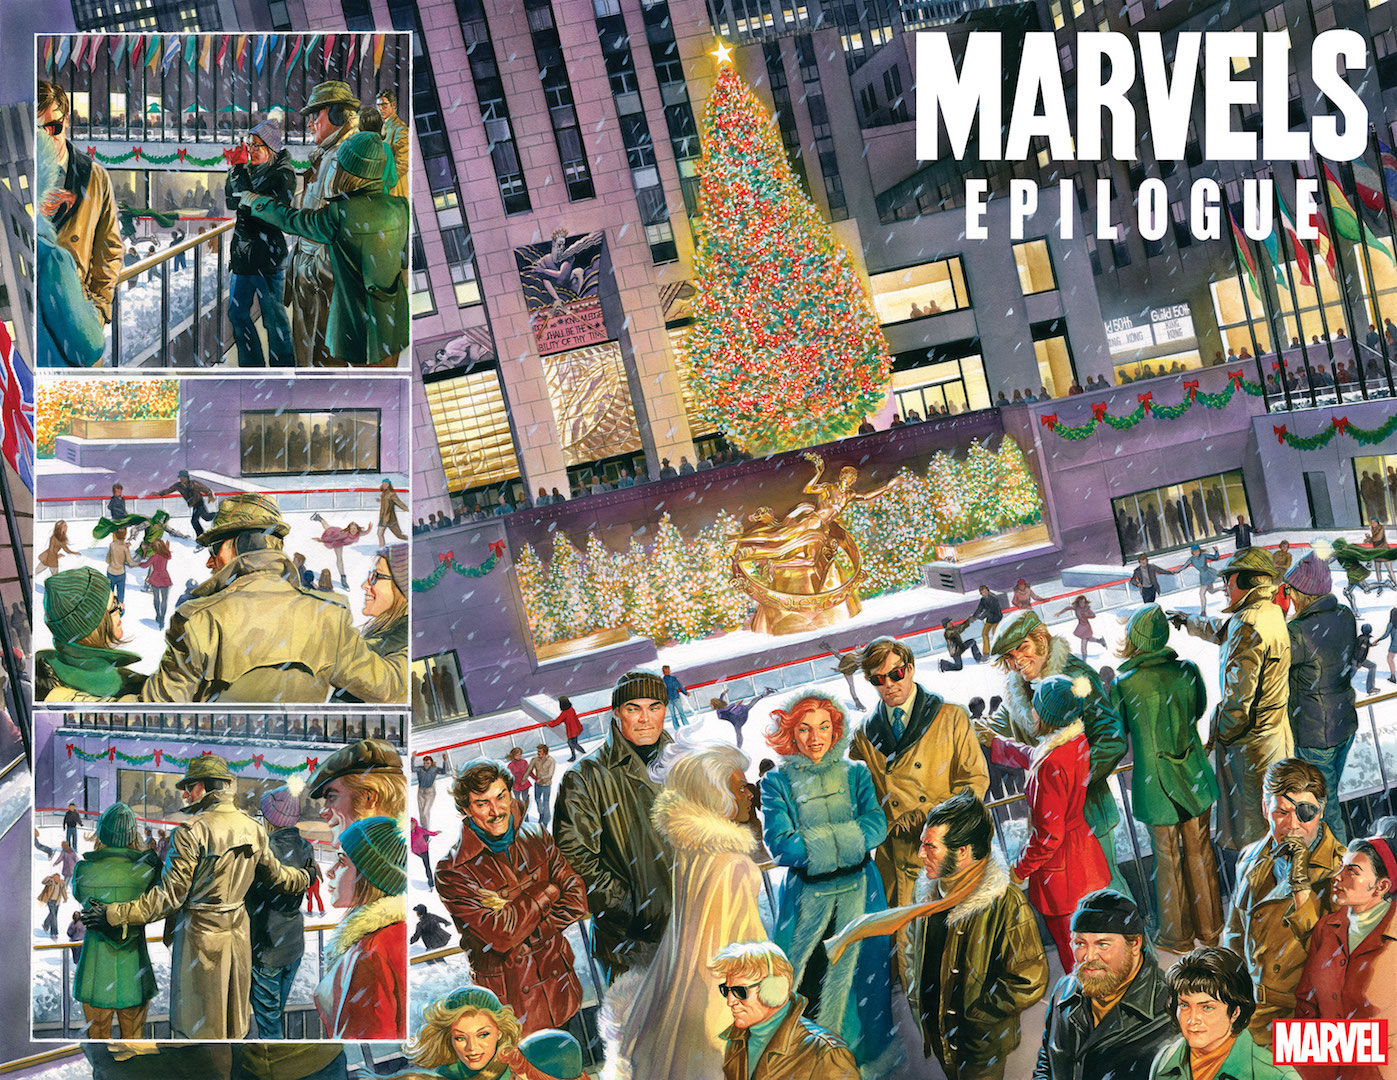 First Look: Alex Ross and Kurt Busiek's Marvels gets an X-Men 70s 16-page story.